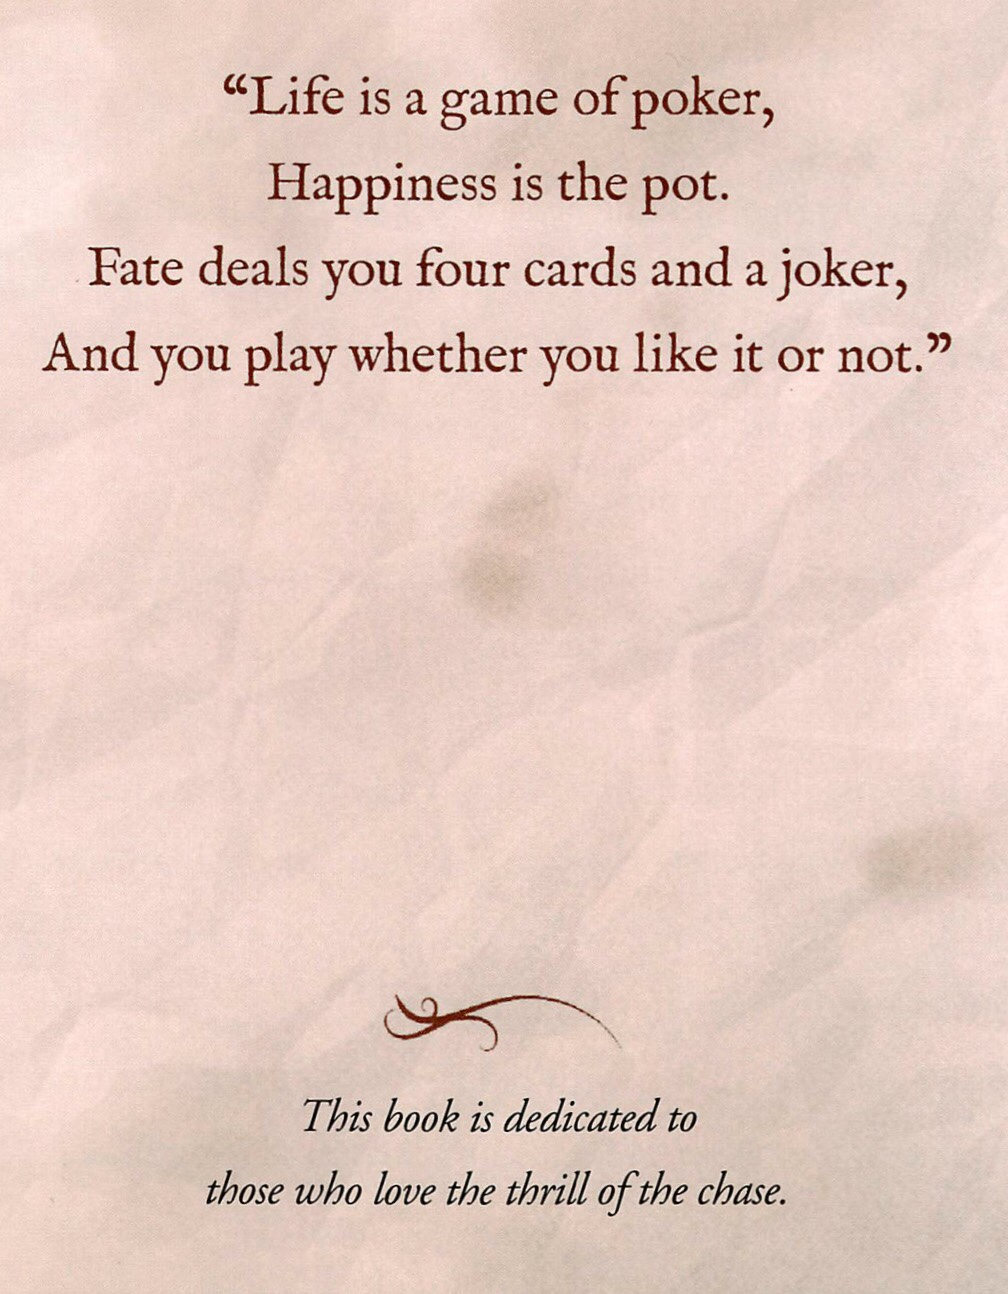 Inspirational quotes about poker